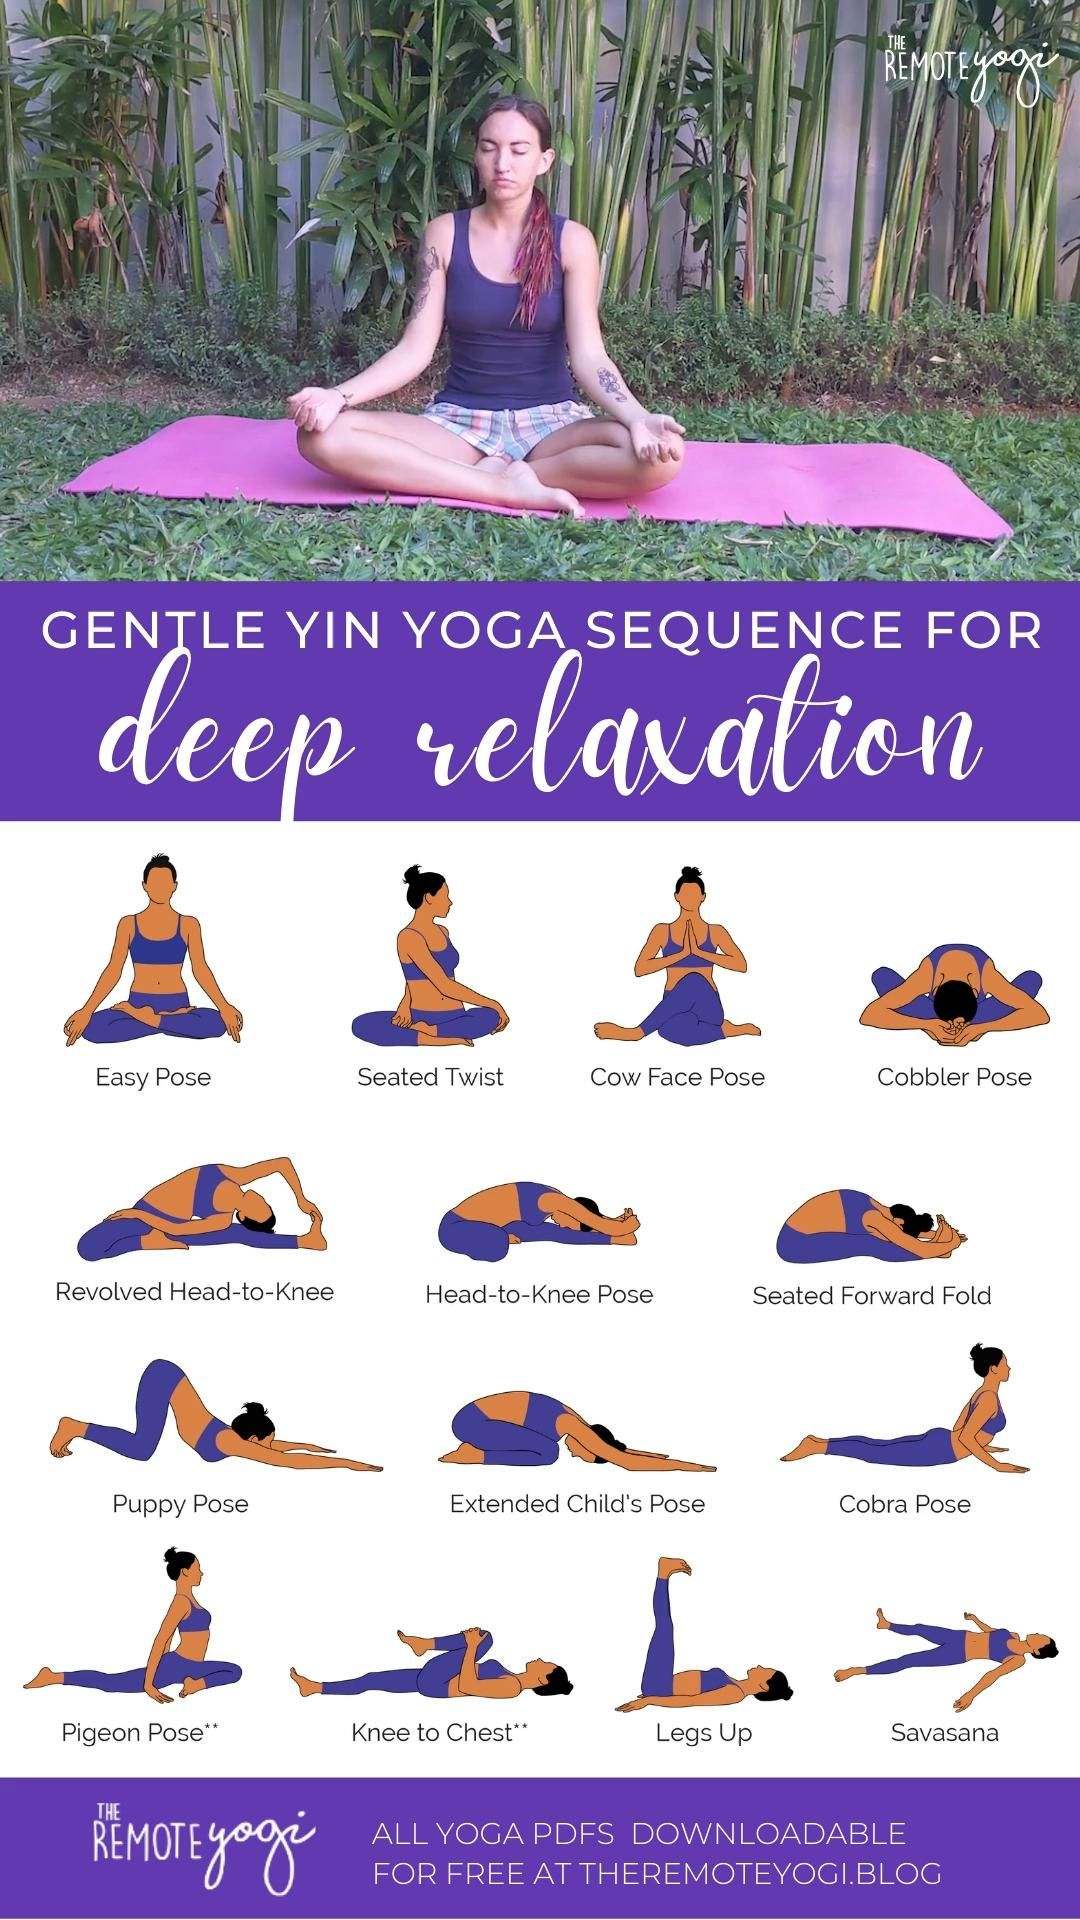 Yin Yoga Sequence for Deep Relaxation